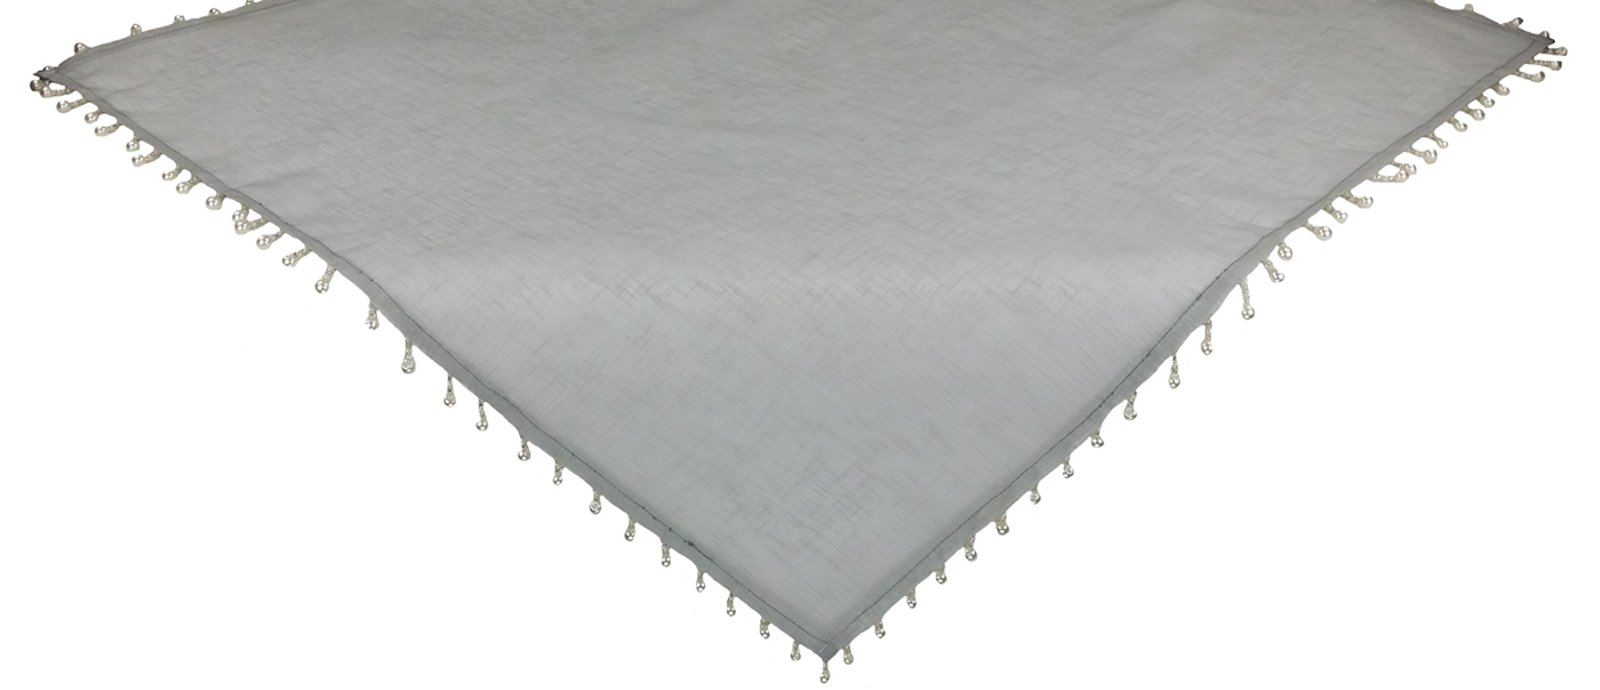 Xia Home Fashions Sheer Beaded Table Topper, 34 by 34-Inch, Silver